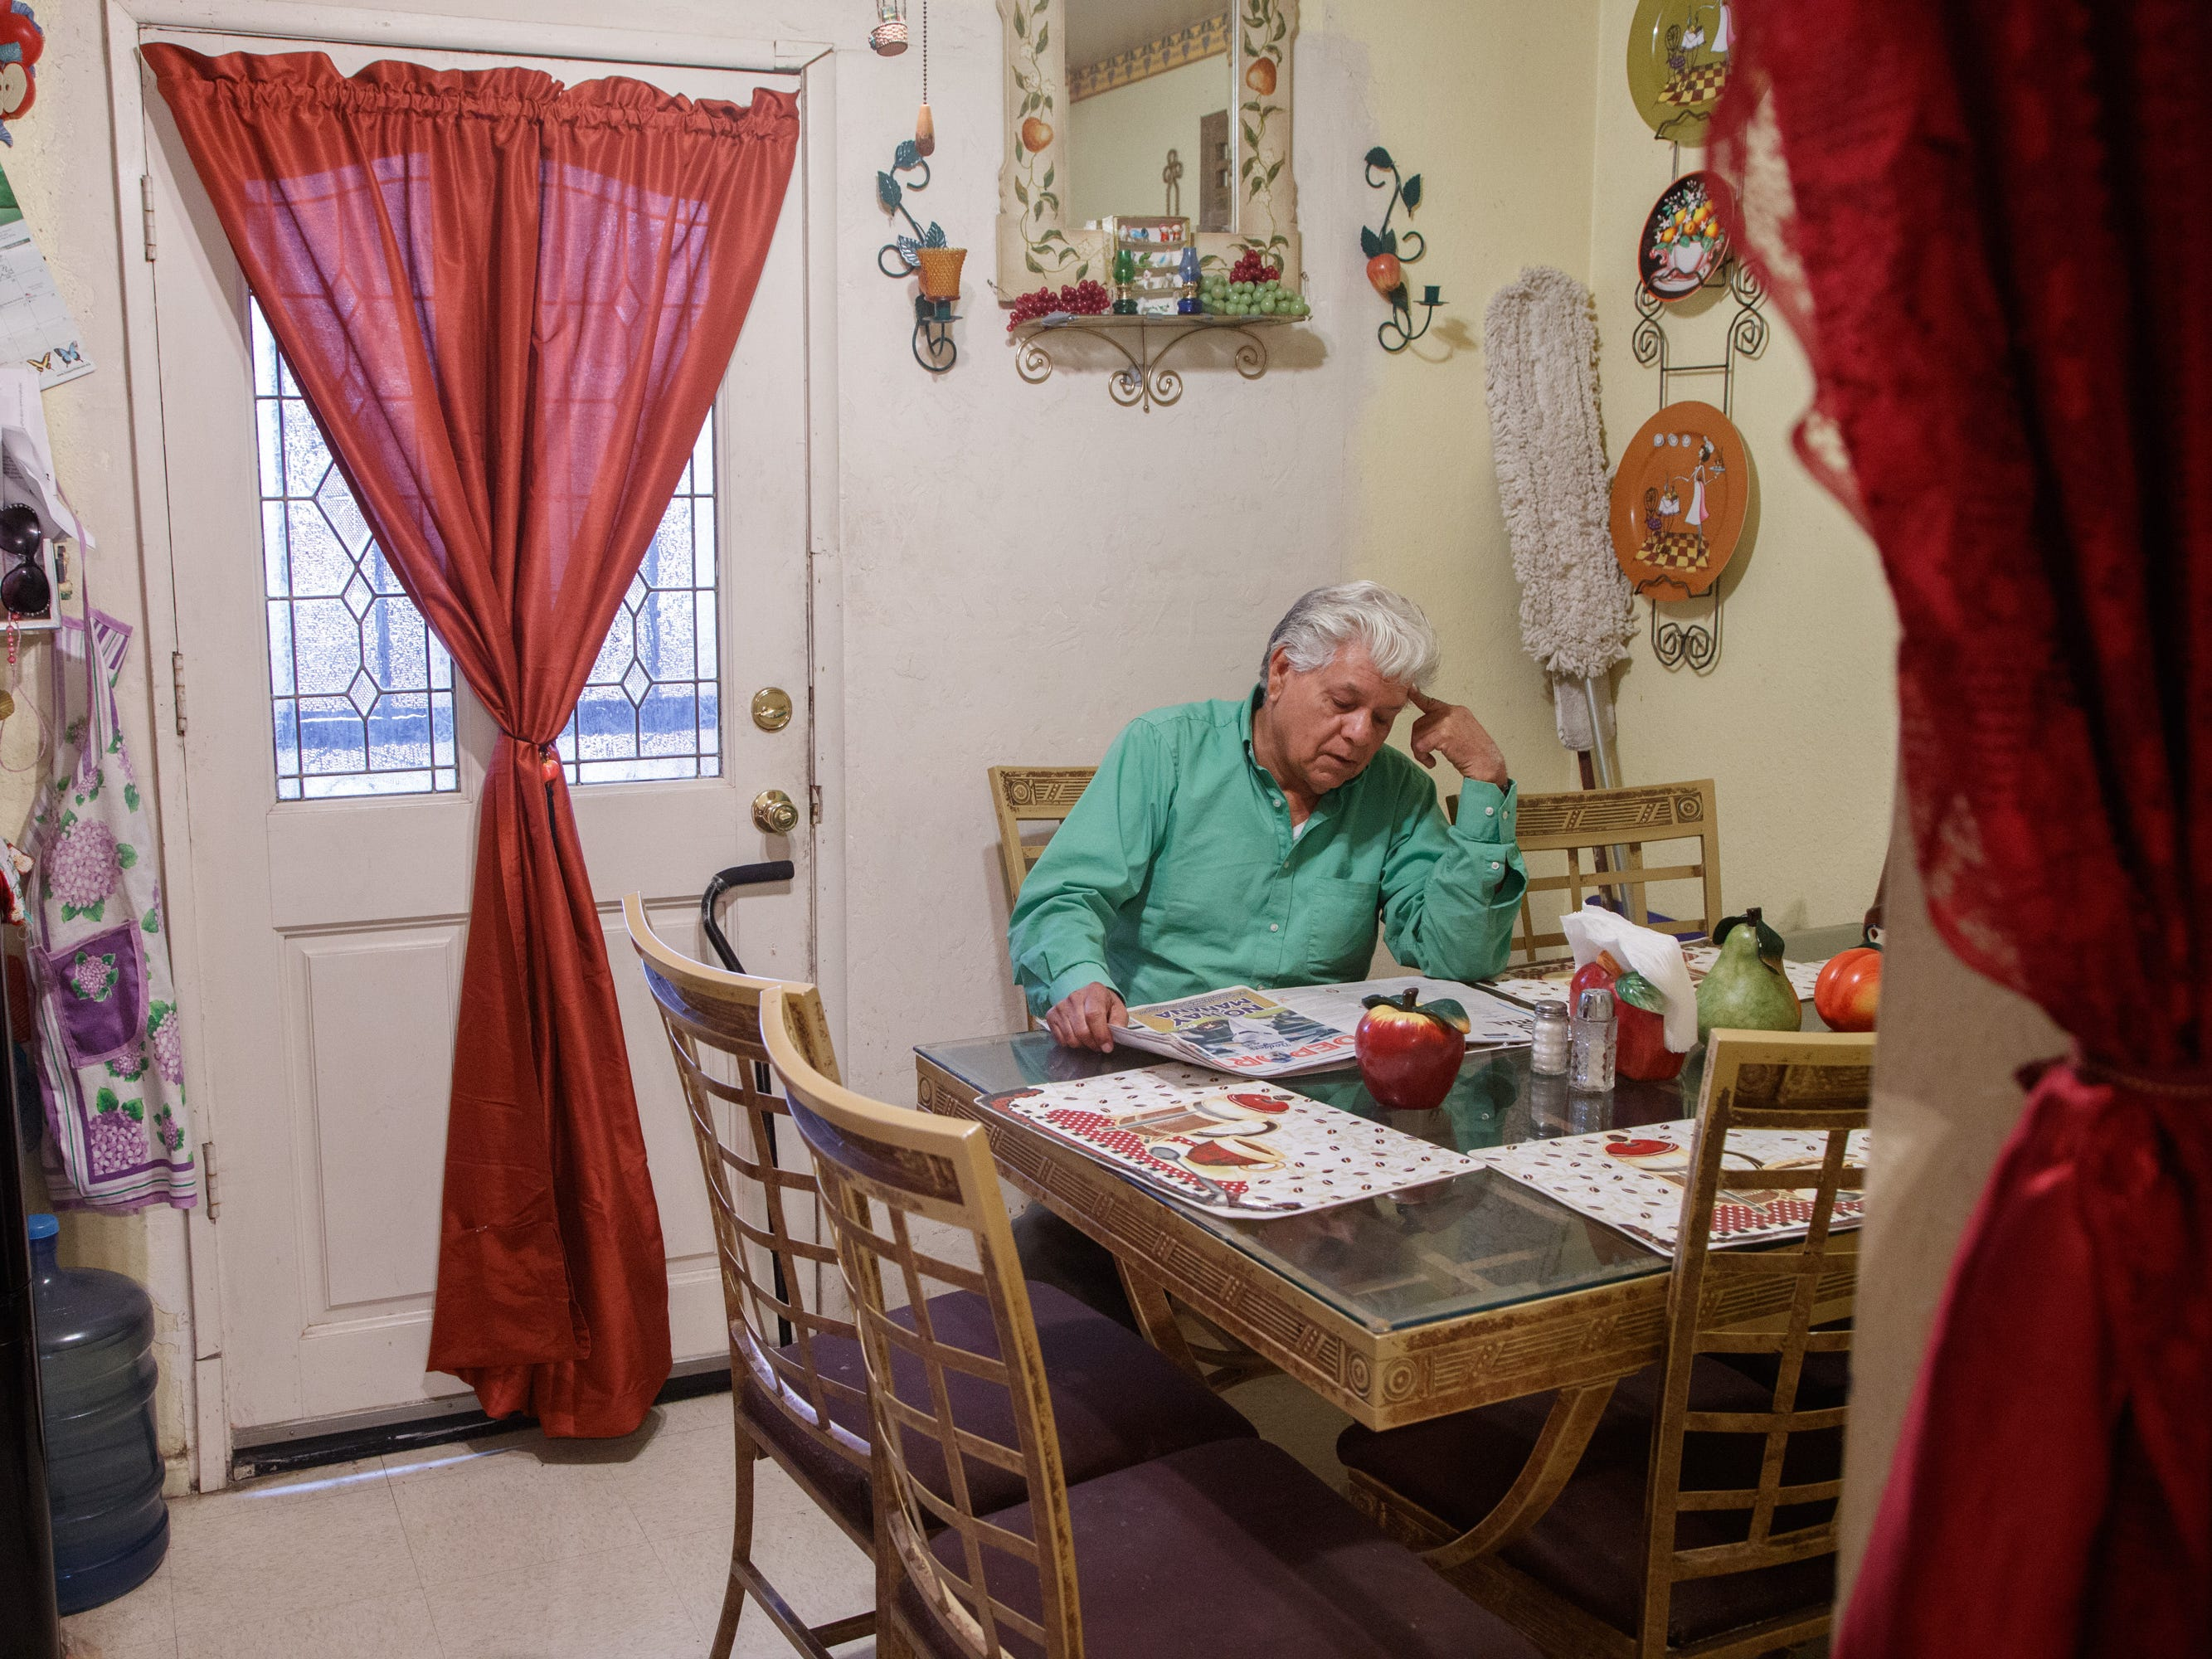 Antonio Ramírez reads the newspaper at his home in Calexico.